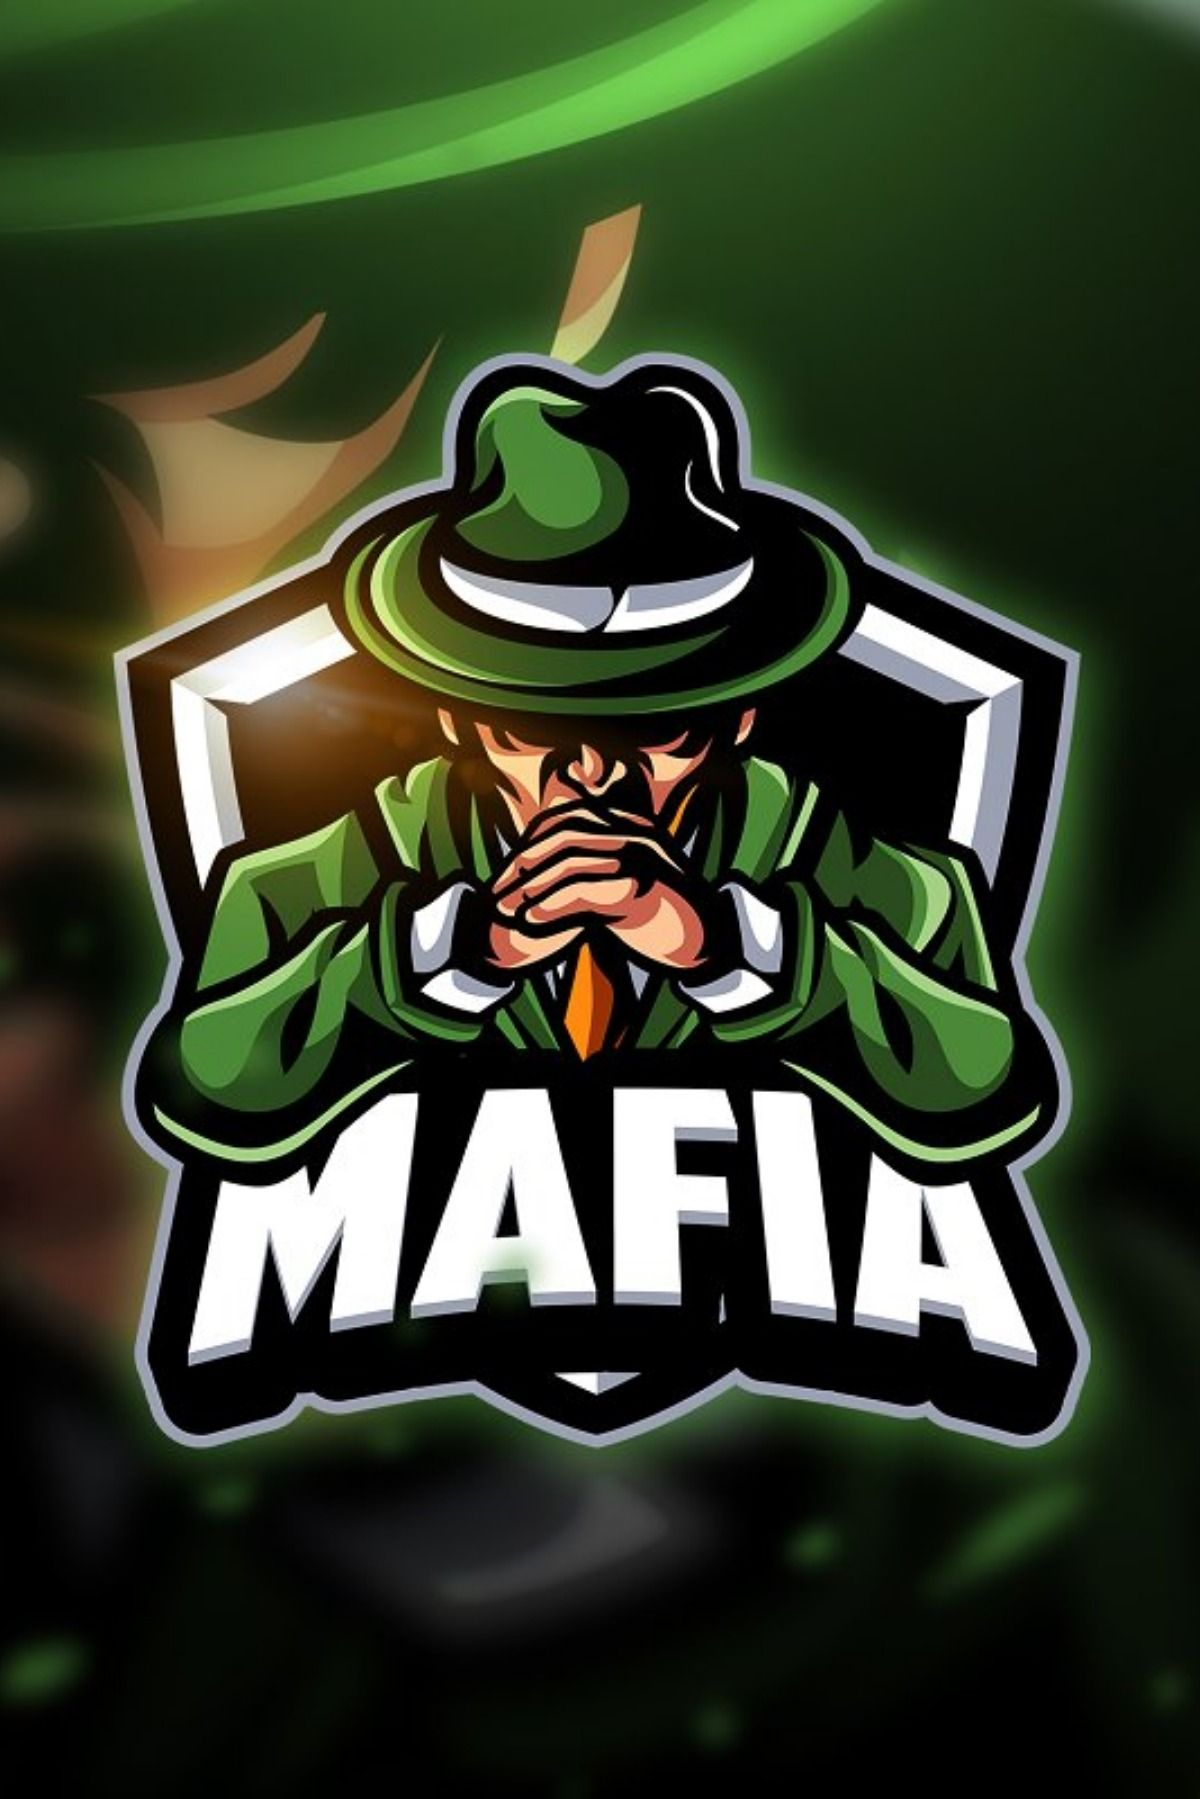 Mafia Mascot & Esport Logo Premade color variation (5